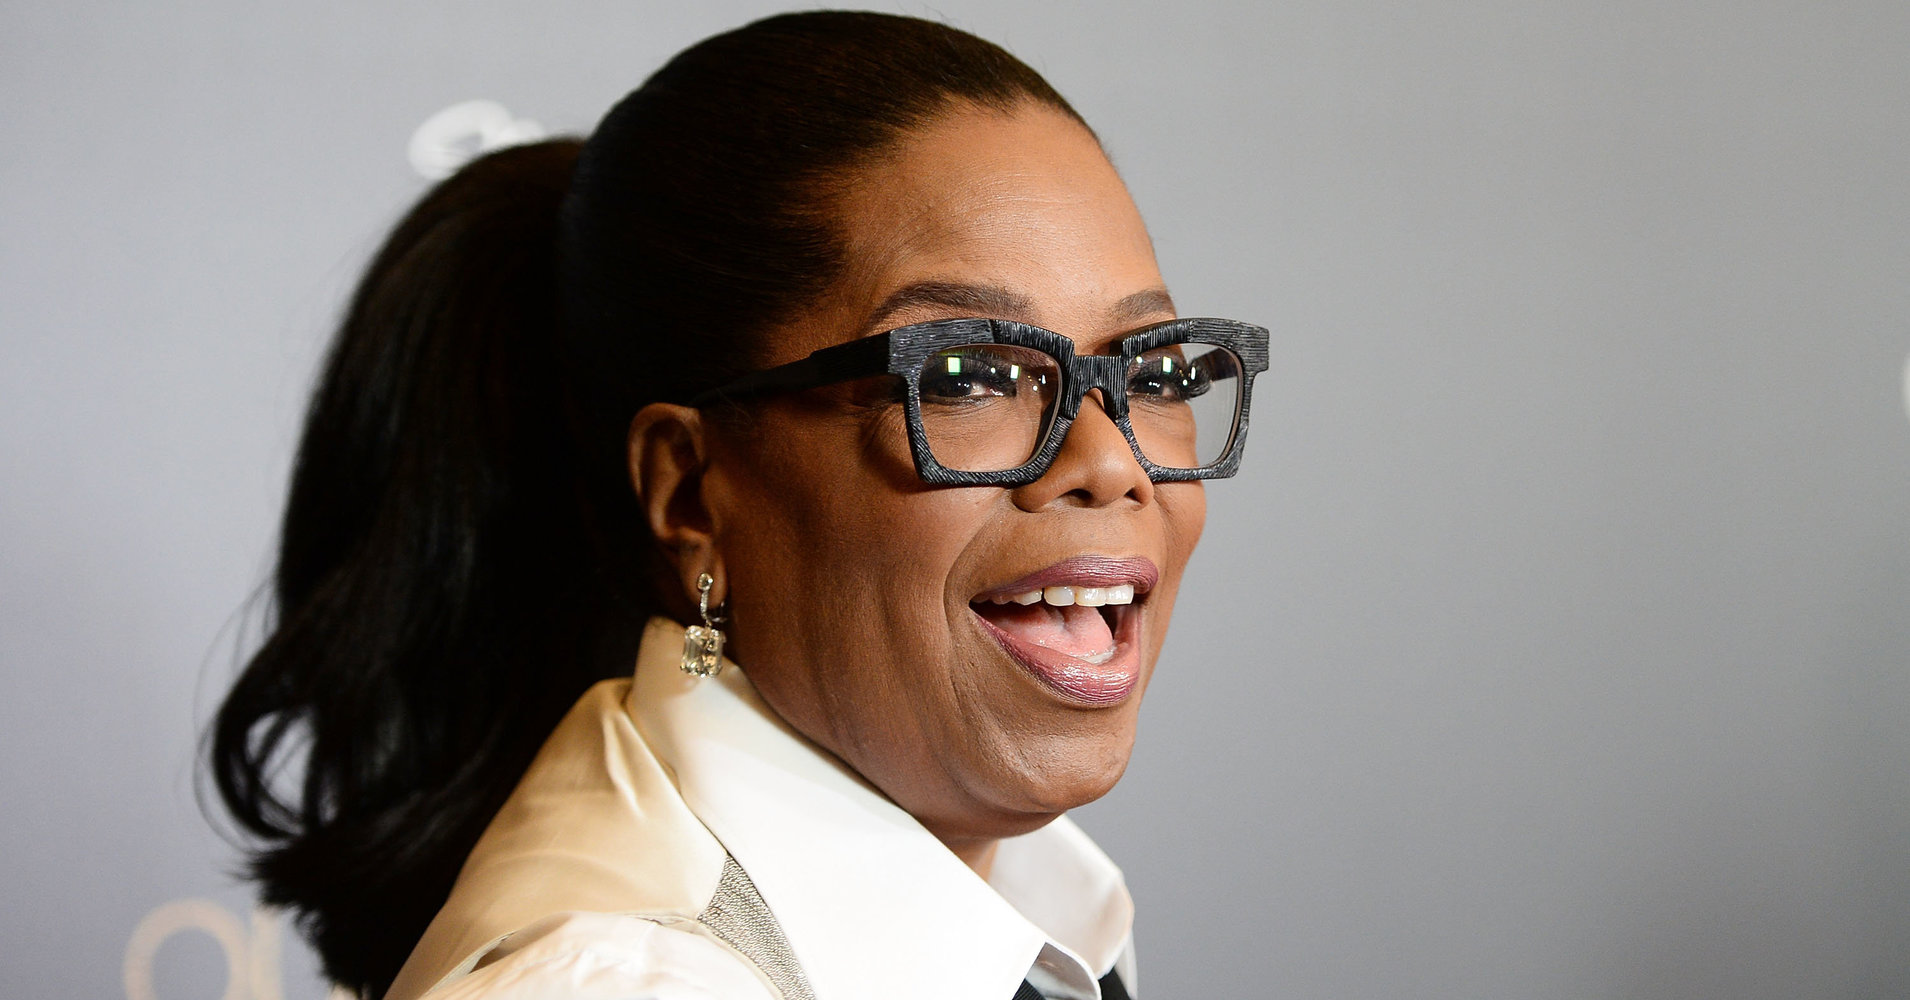 Guys, A Starbucks Barista Asked Oprah How To Spell Her Name